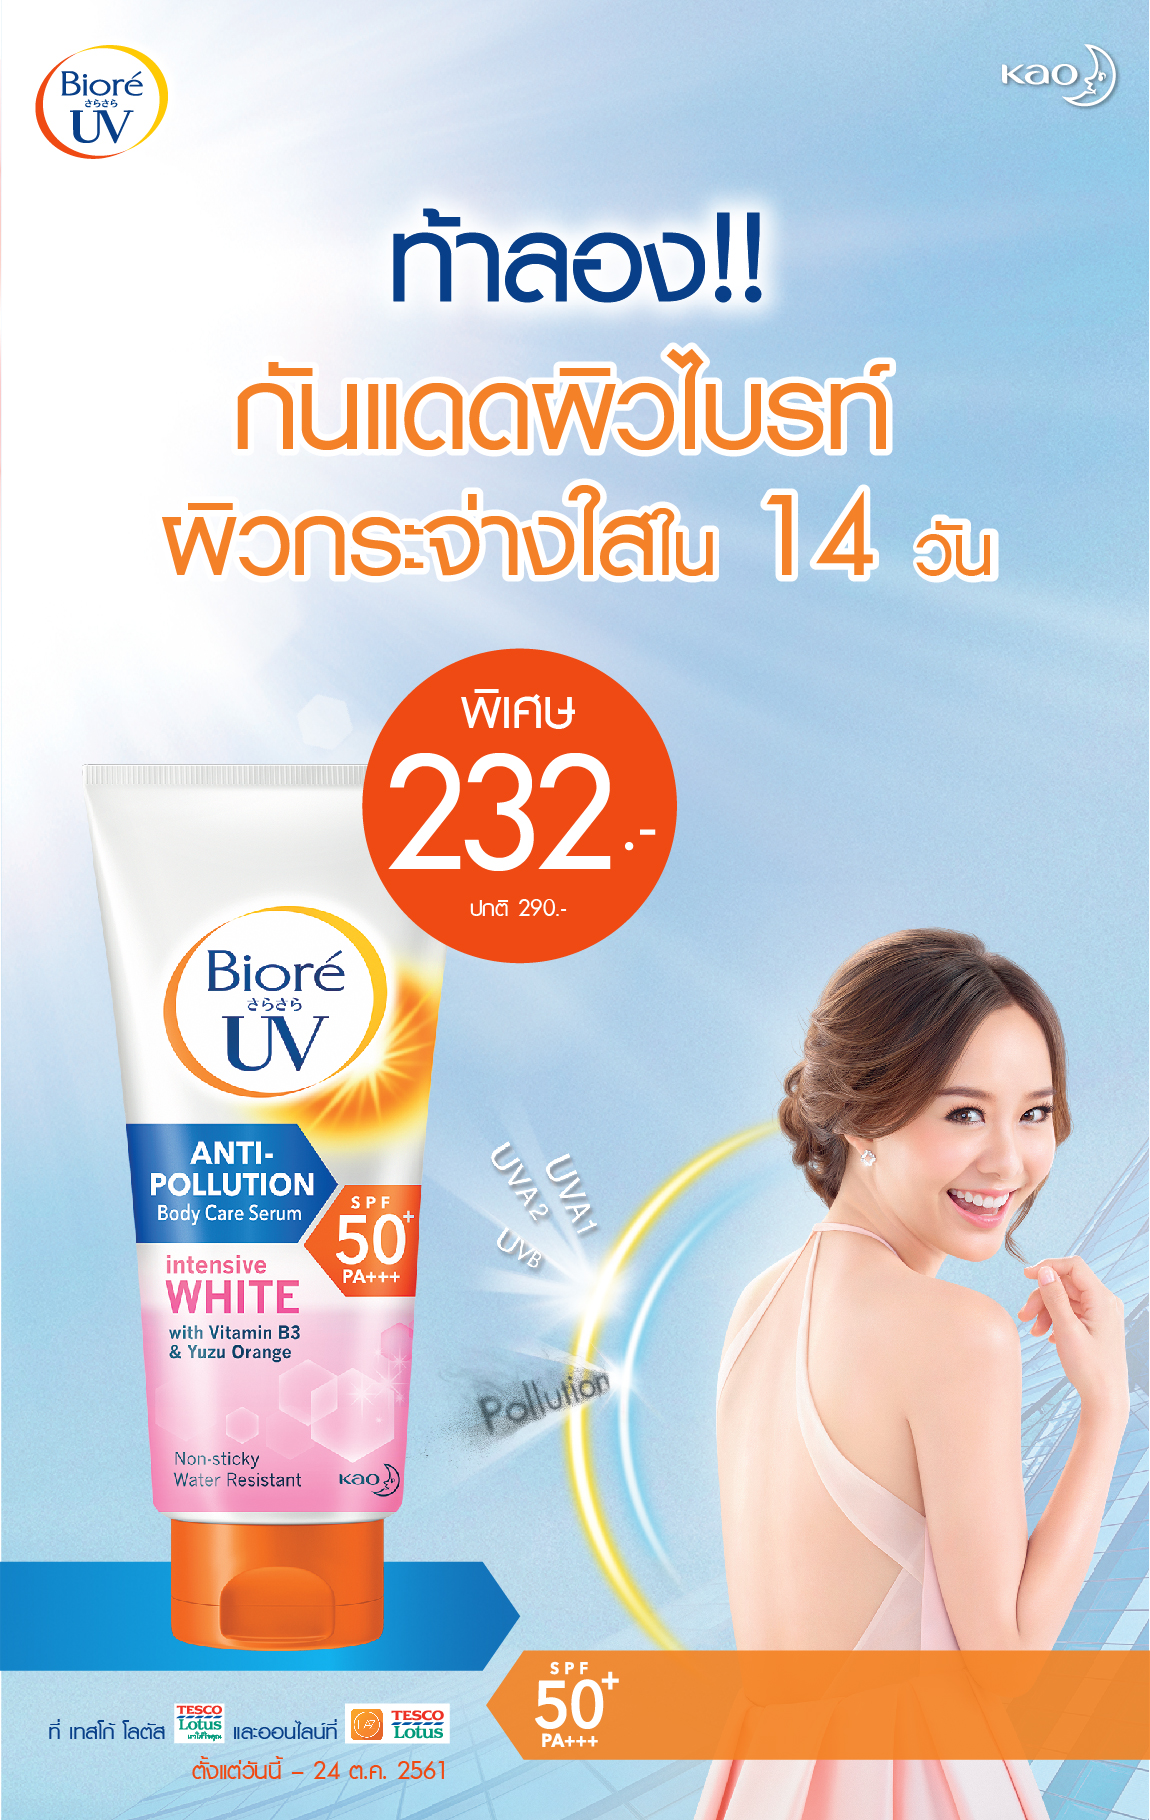 Biore UV Anti-Pollution Body Care Serum Intensive White SPF50PA Tesco Lazada Promotion